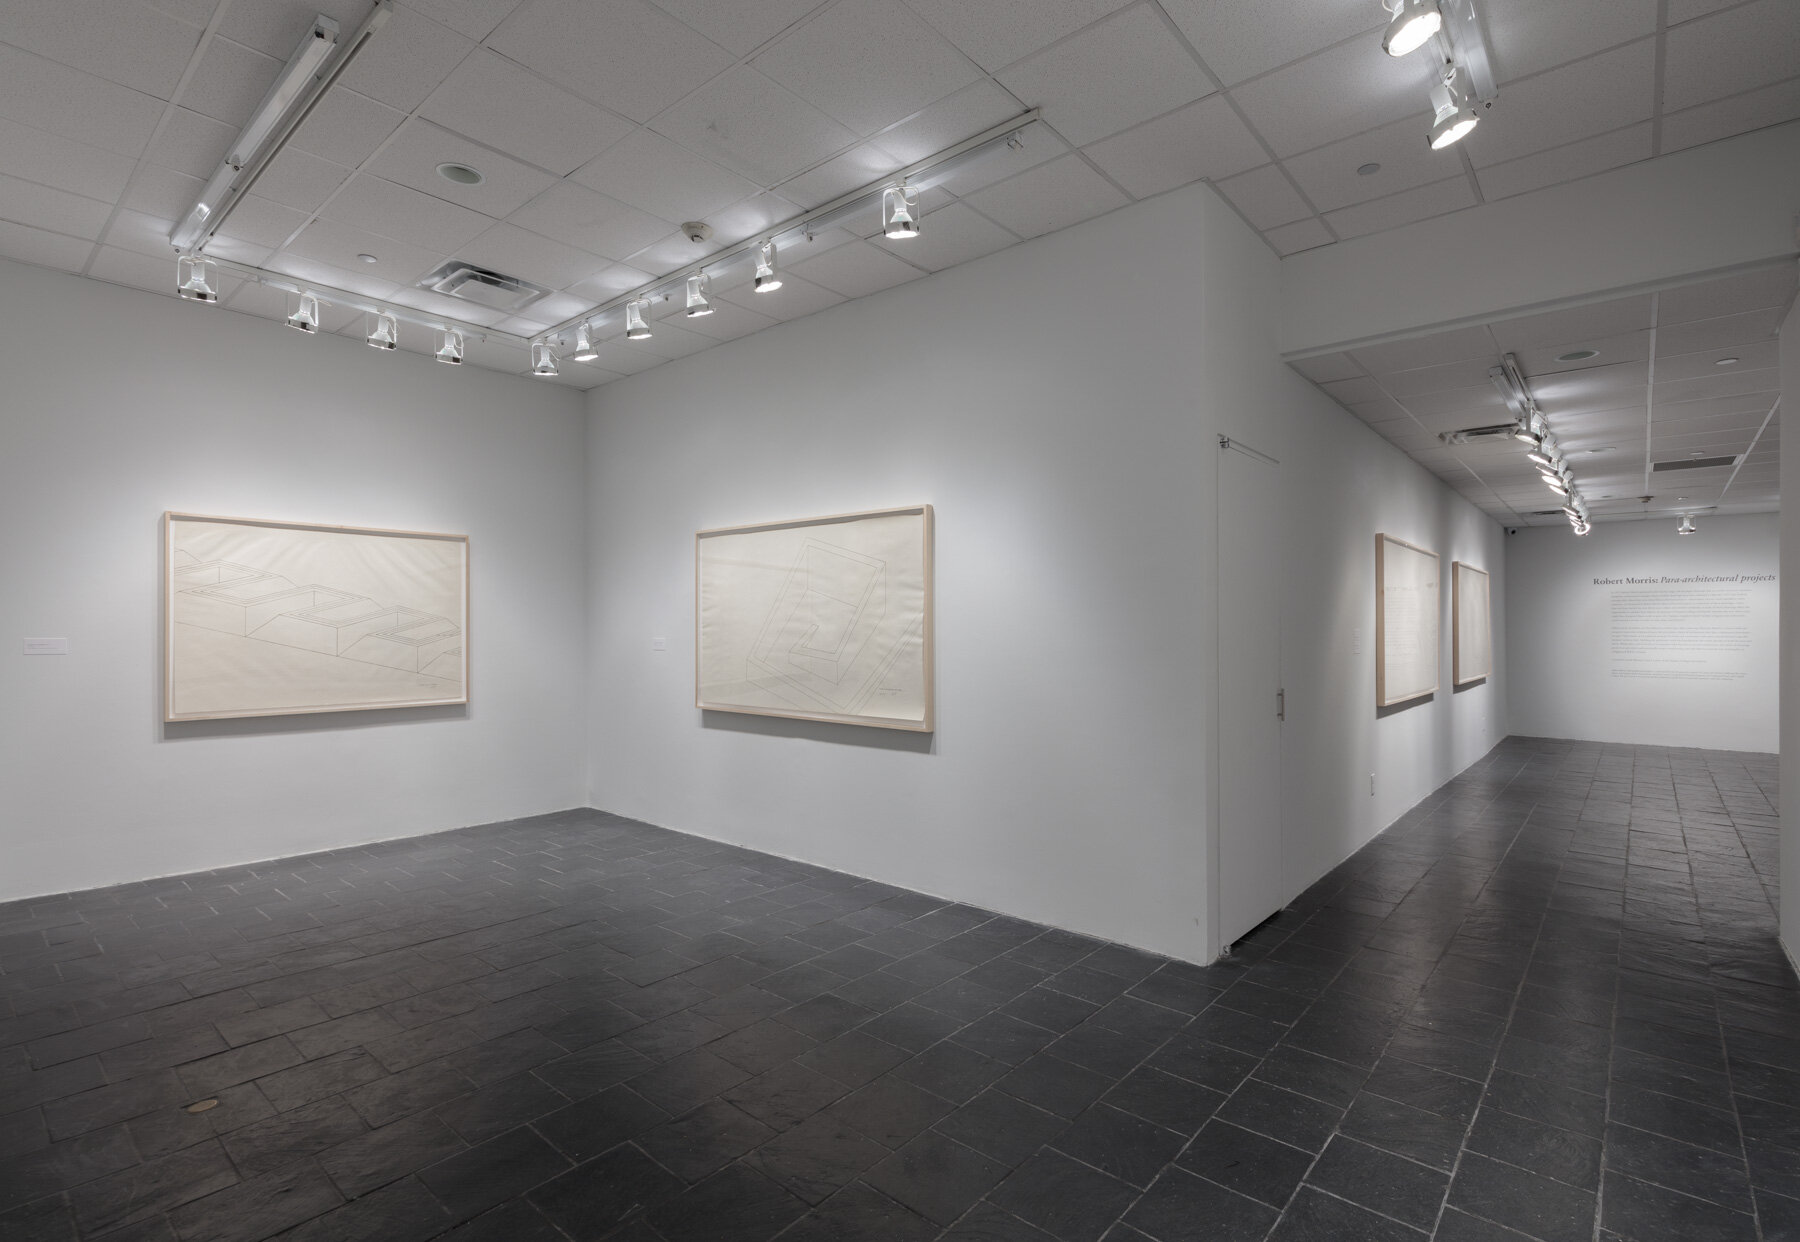 Installation view:  Robert Morris: Para-architectural projects , Hunter College Art Galleries, 2019. © 2019 The Estate of Robert Morris / Artists Rights Society (ARS), New York. Photo: Stan Narte